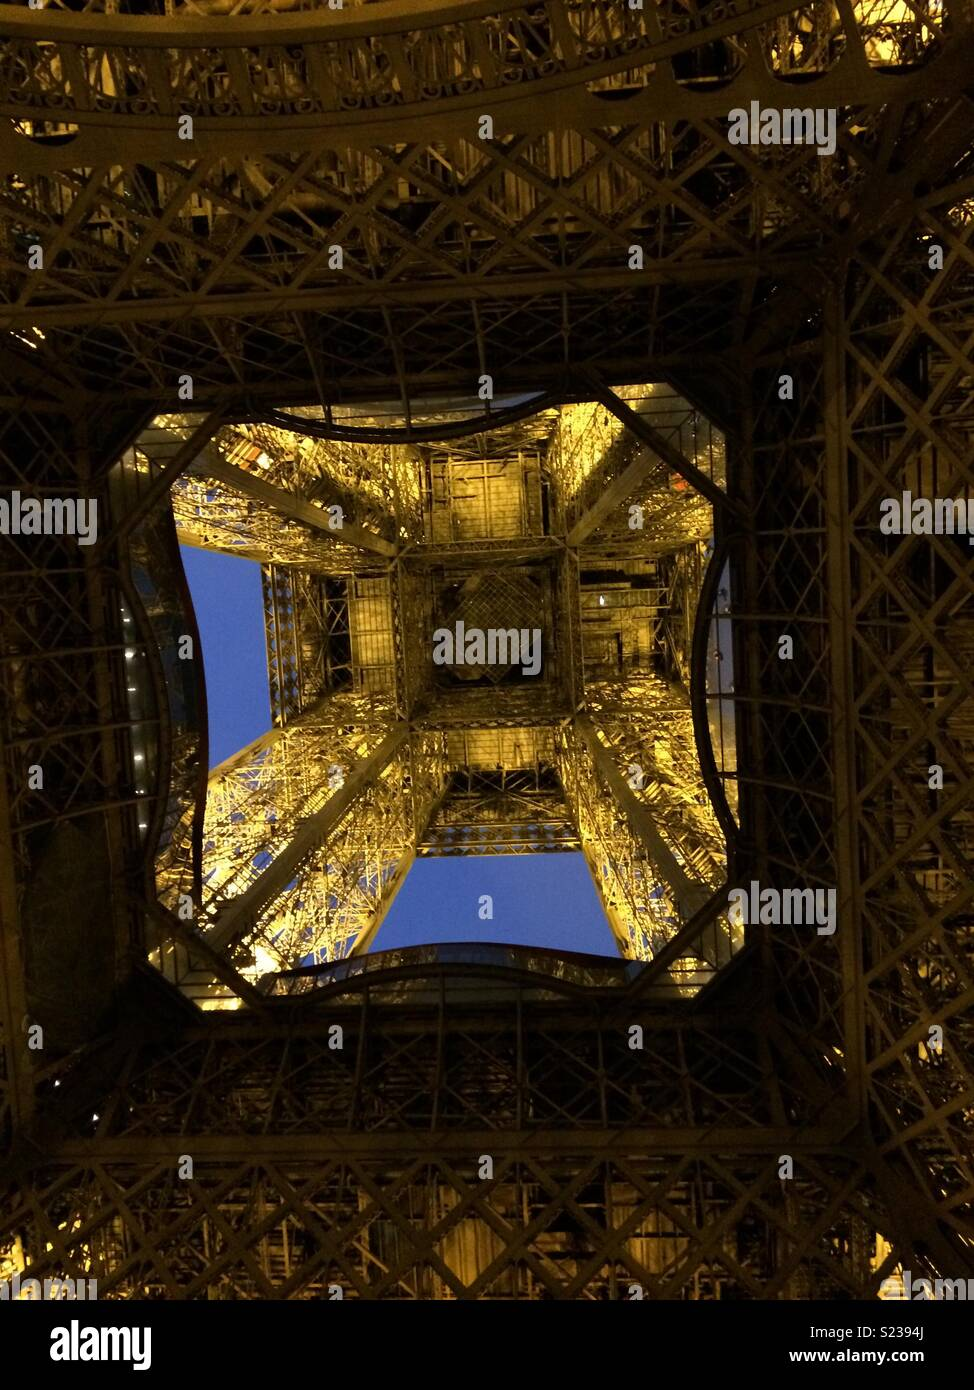 Standing underneath the Eiffel Tower - Stock Image